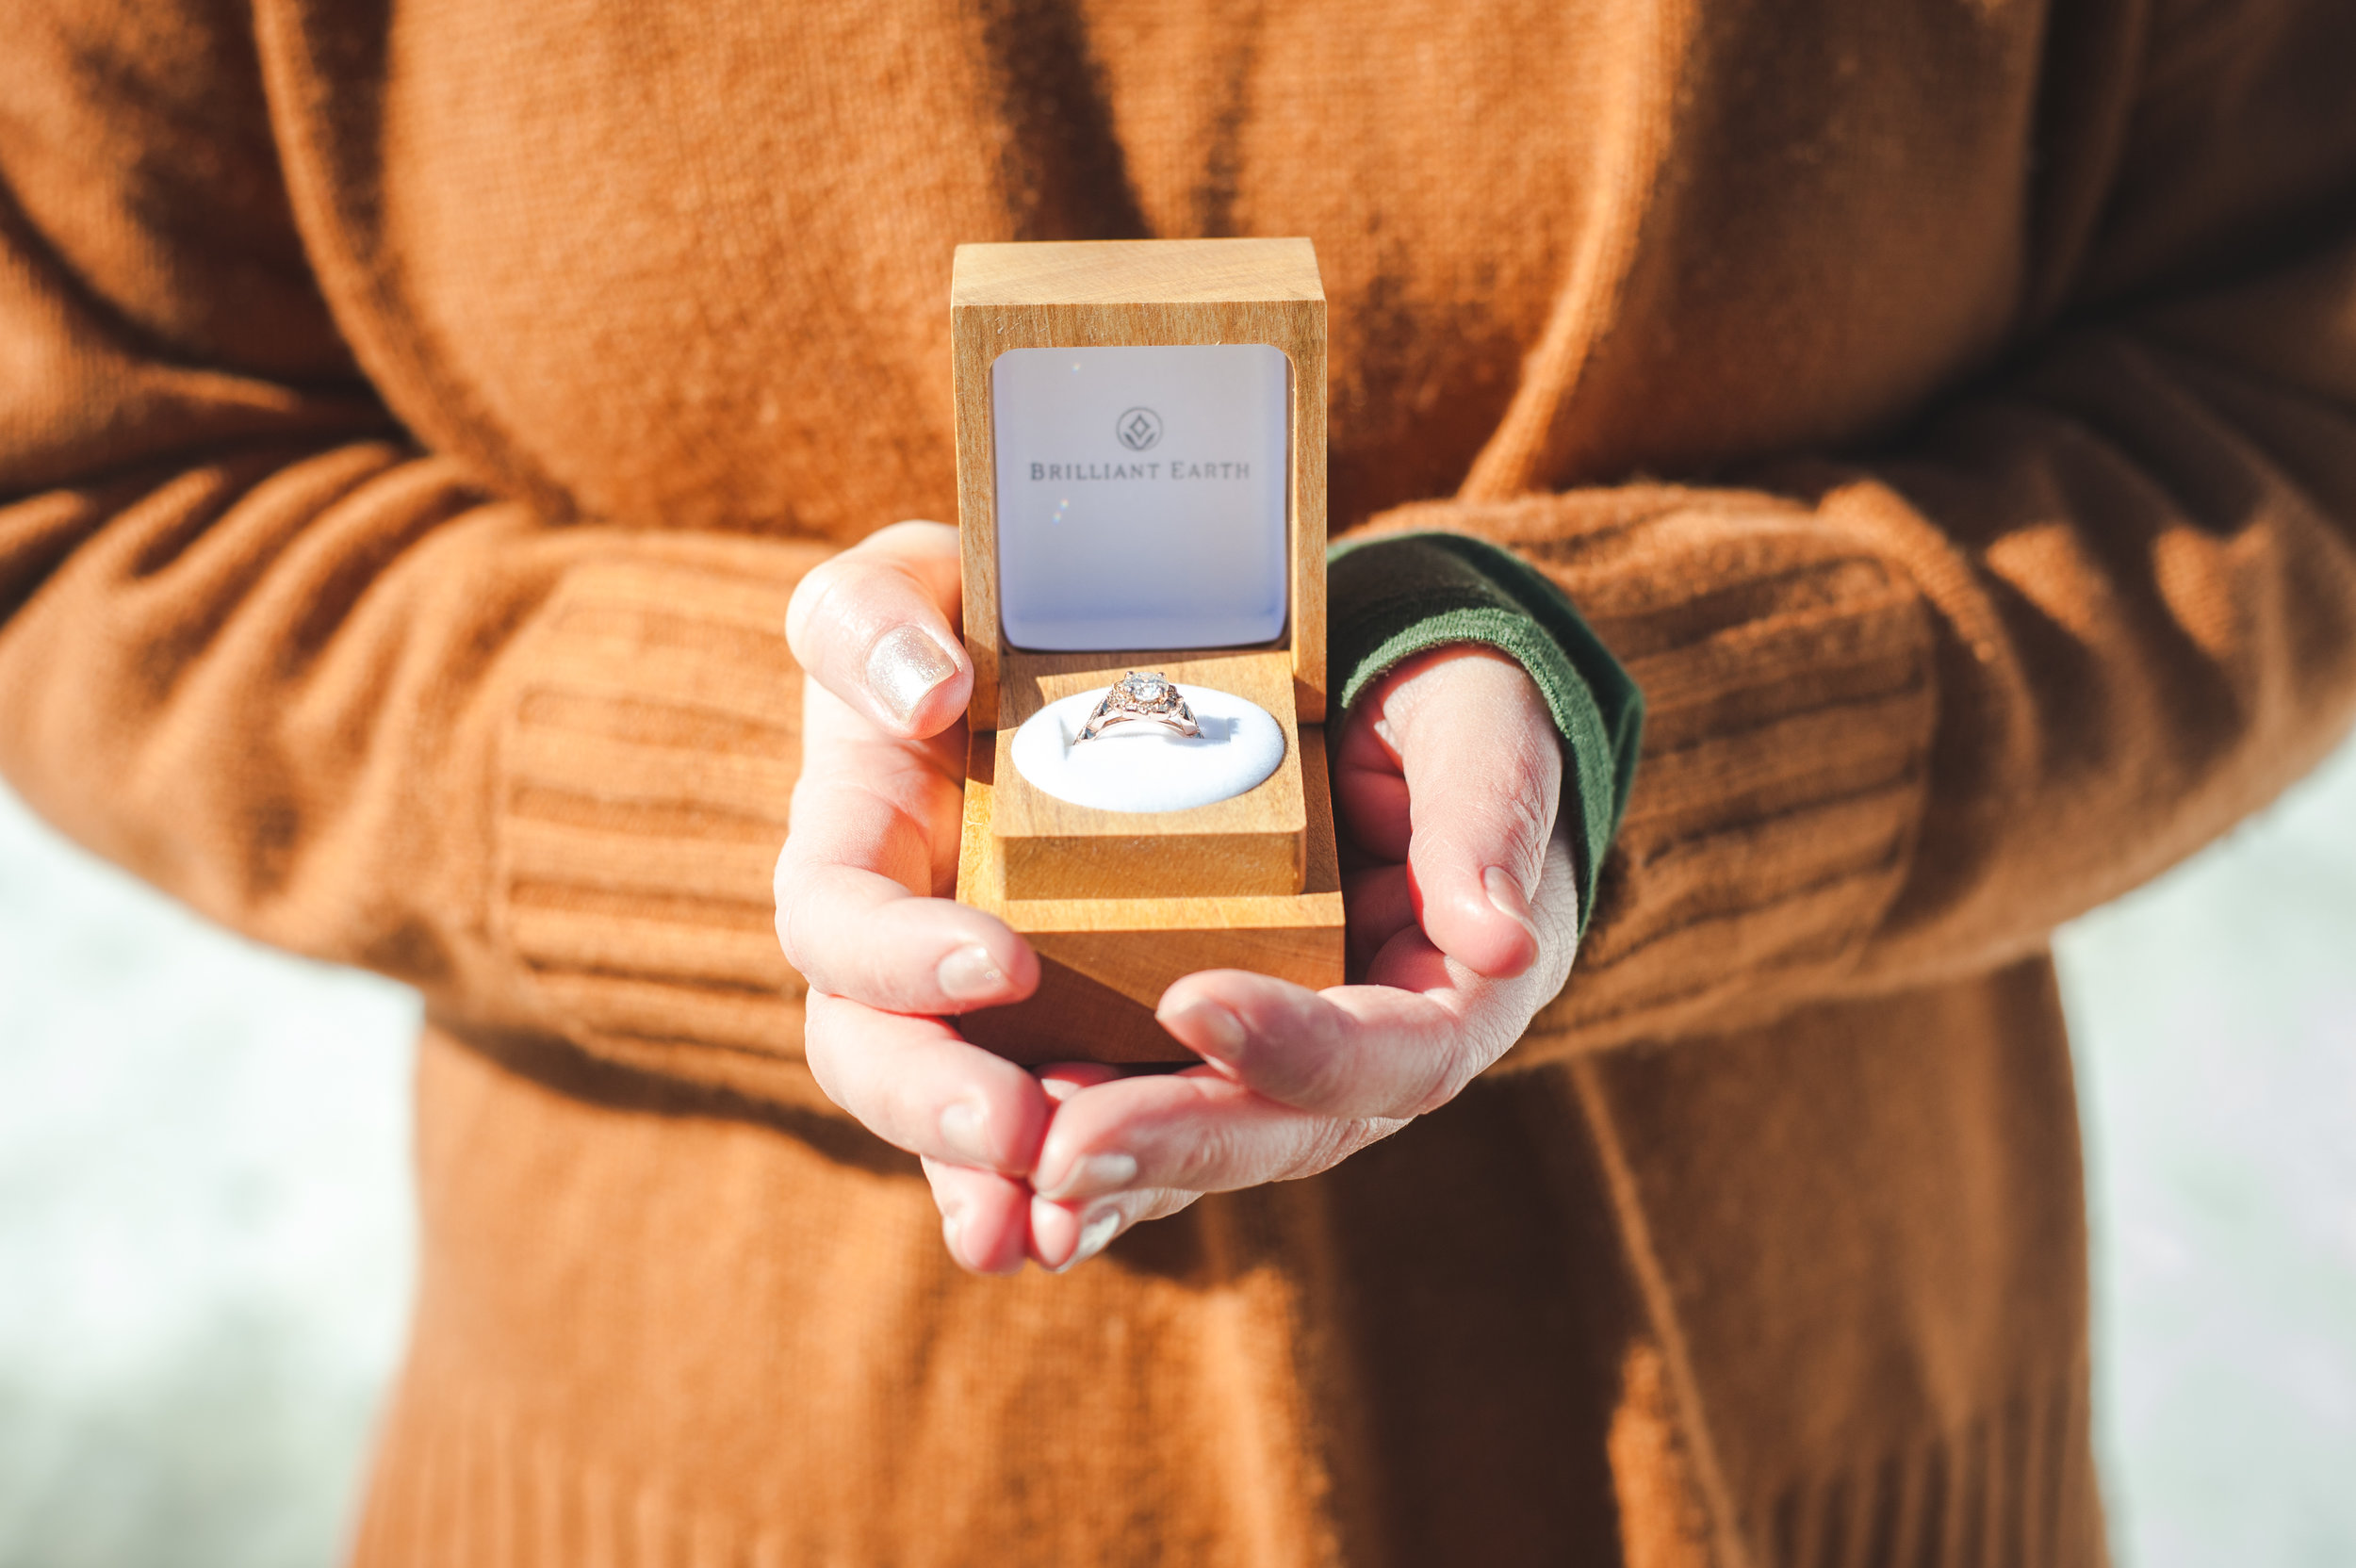 Engagement Ring in wood box |Sapphire Point engagement session sunny winter day in Colorado | Keeping Composure Photography